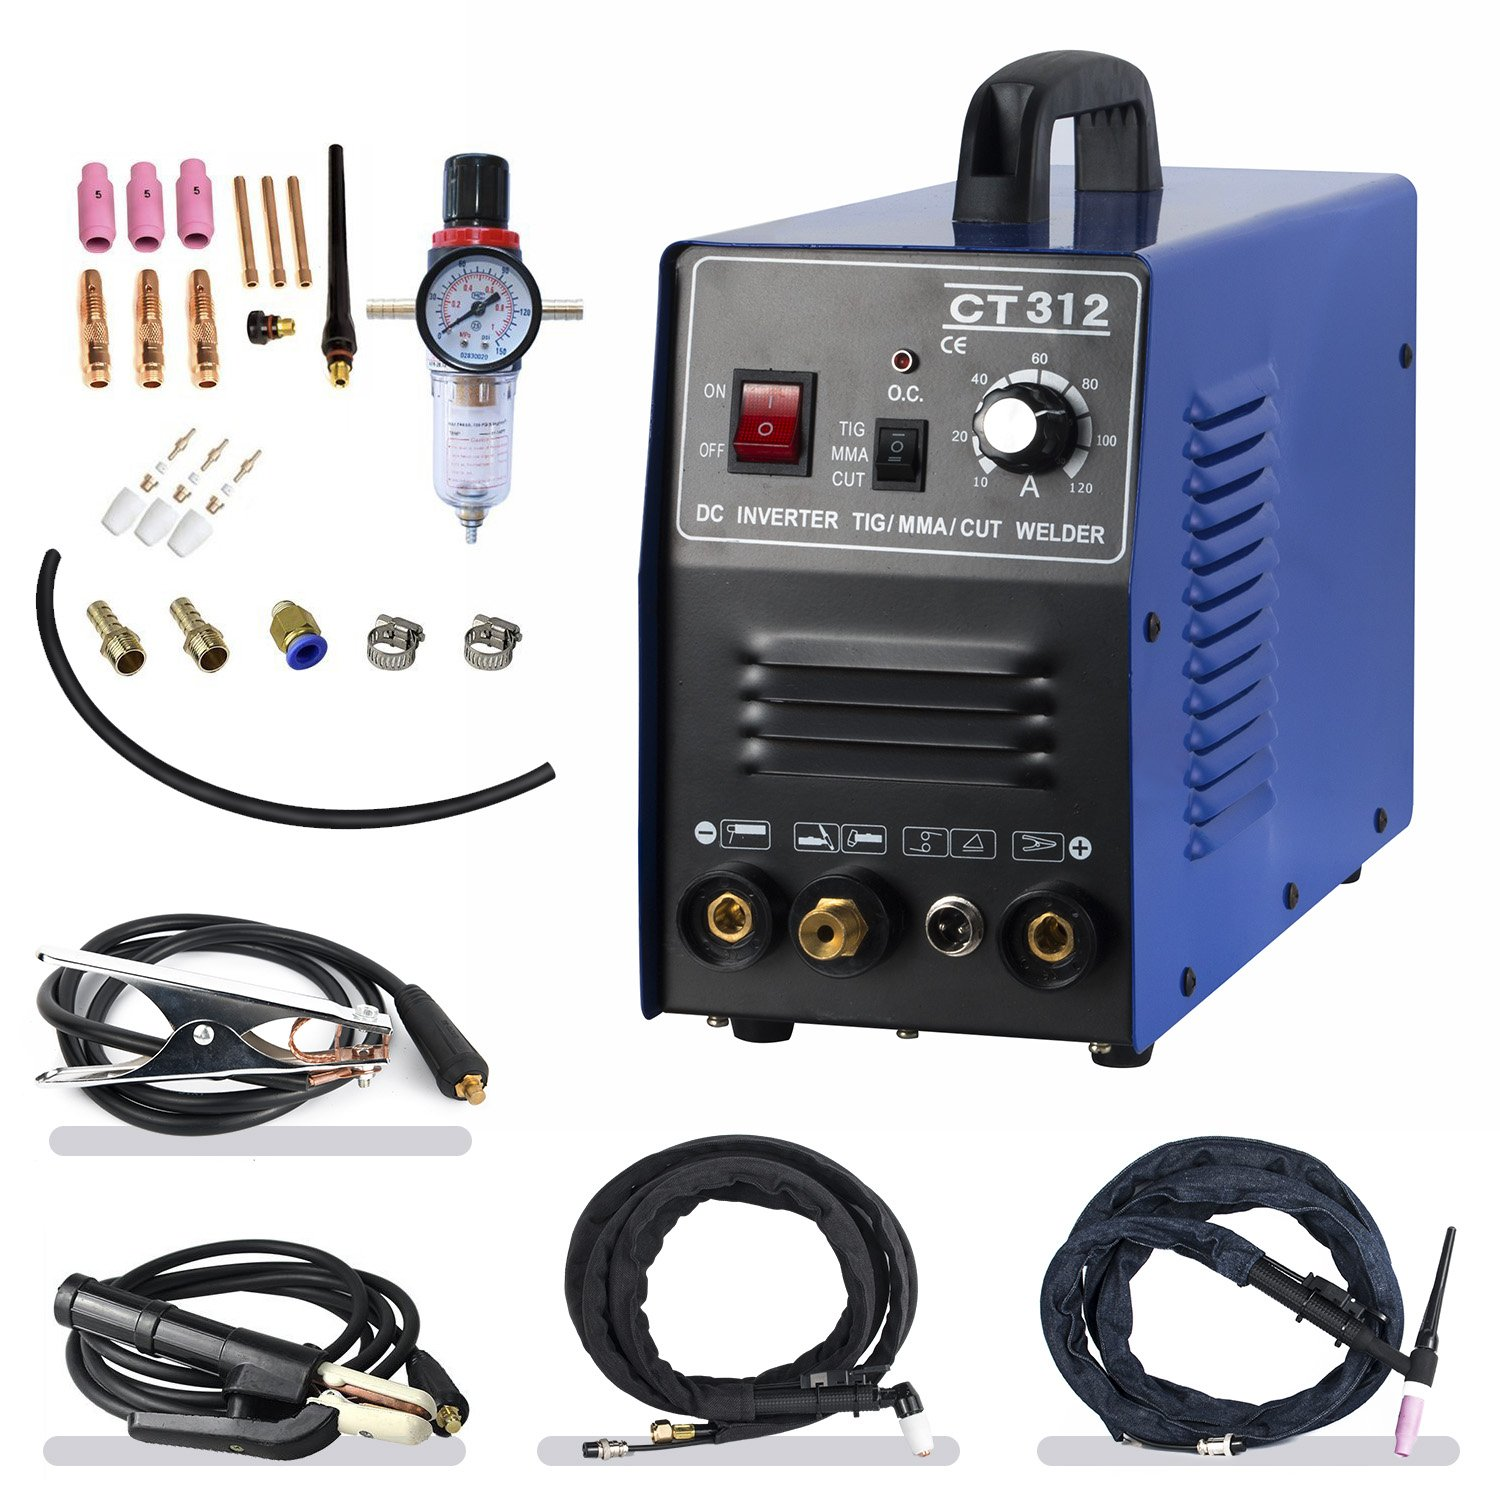 TIG/ MMA Air Plasma Cutter - Tosense CT312 3 in 1 Combo Welding Machine,120A TIG/ MMA , 30A ARC Plasma Cutter Dual Voltage 220V/110V by Tosense